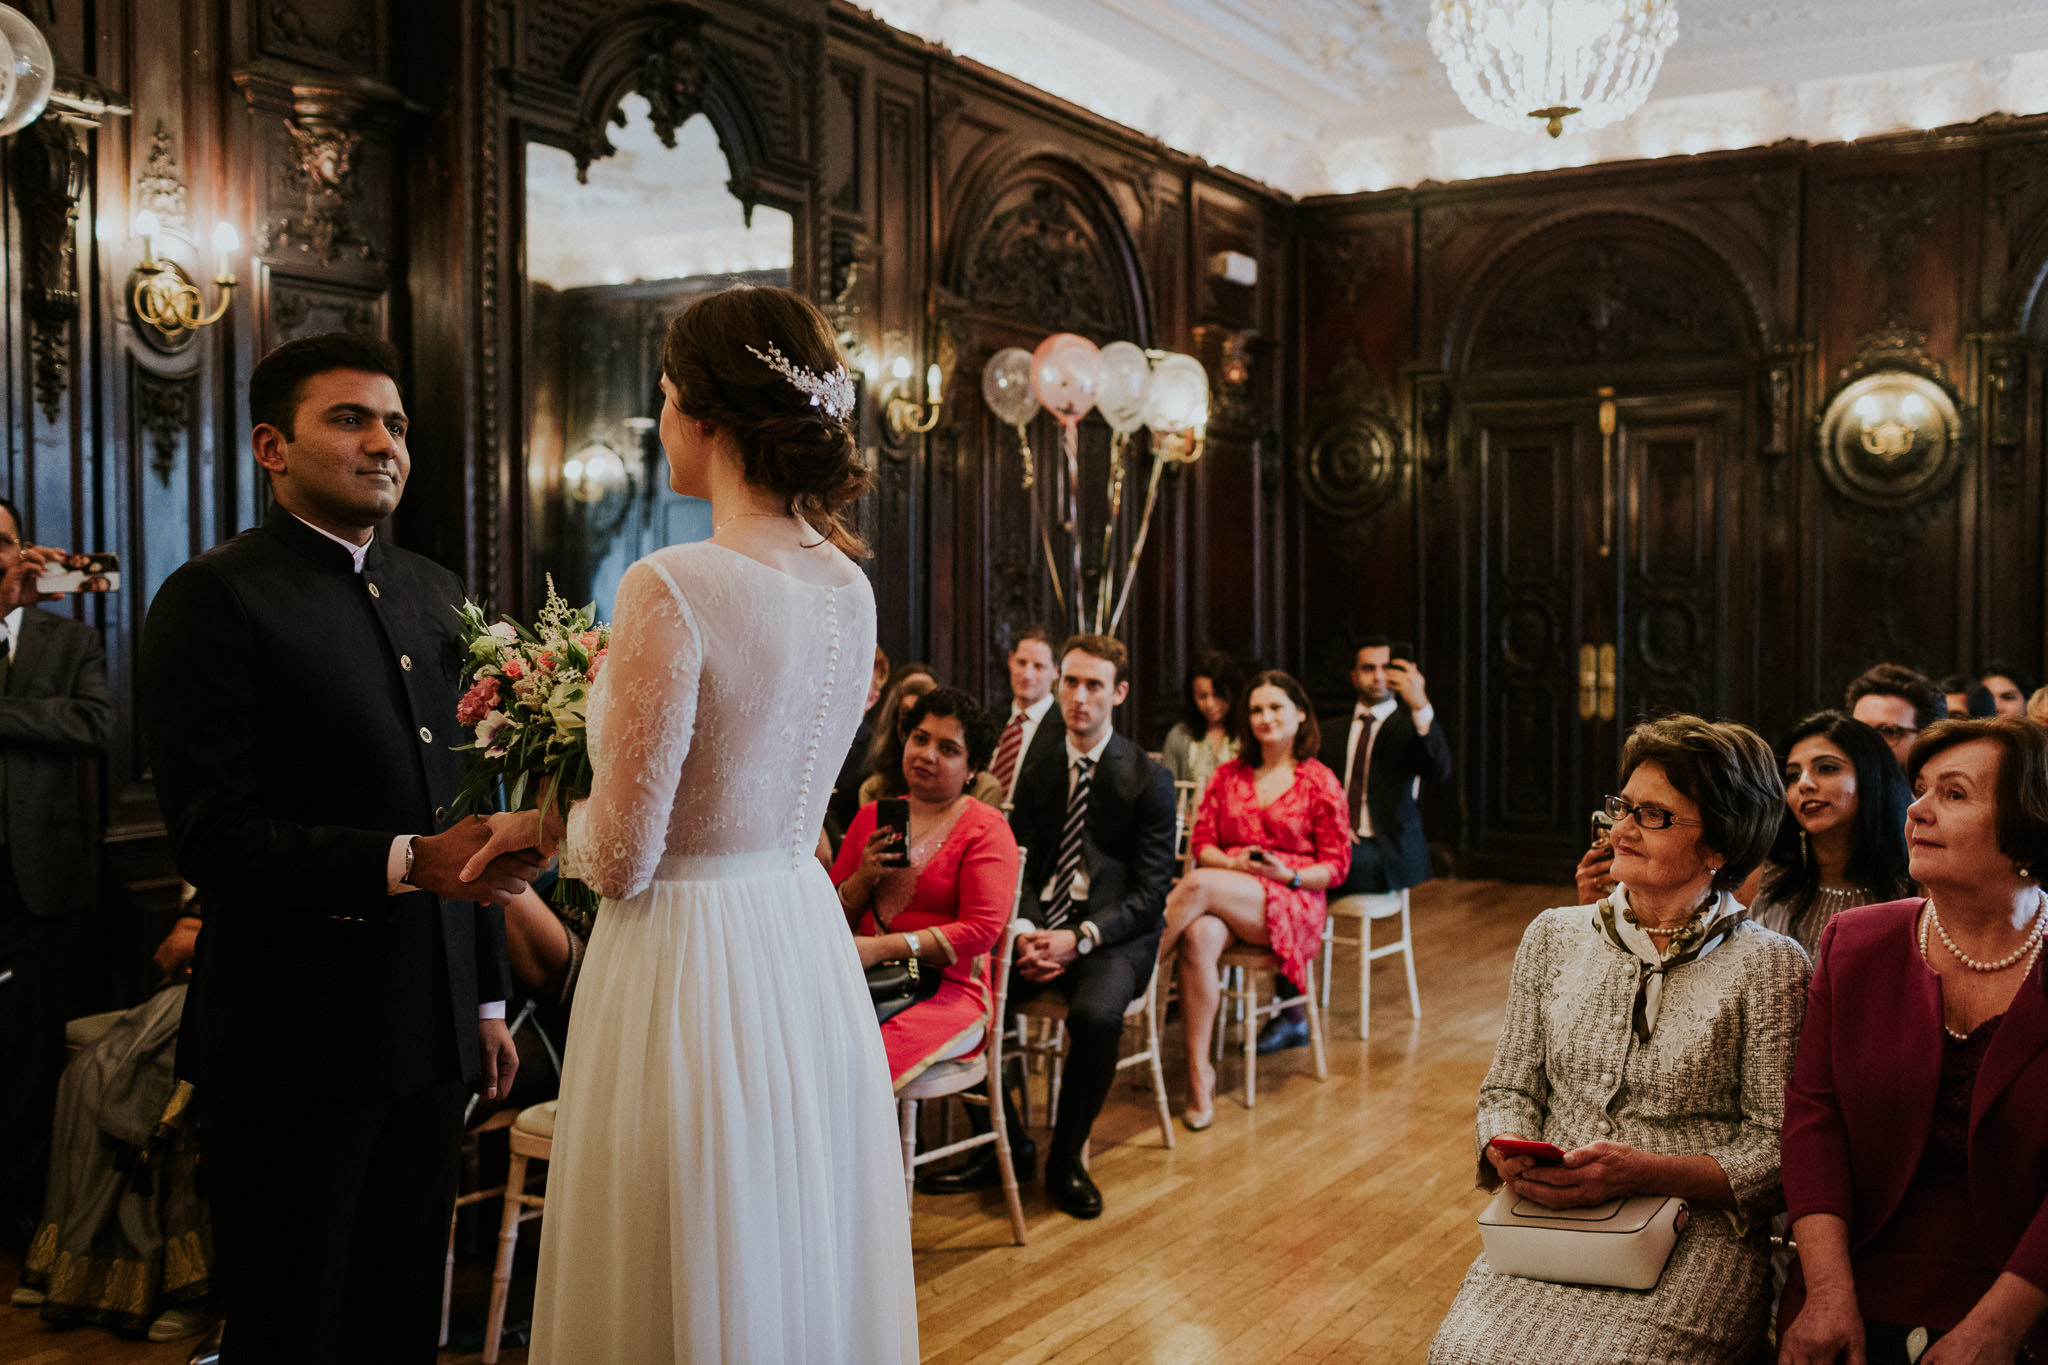 Bride and groom at Dartmouth House for their wedding ceremony